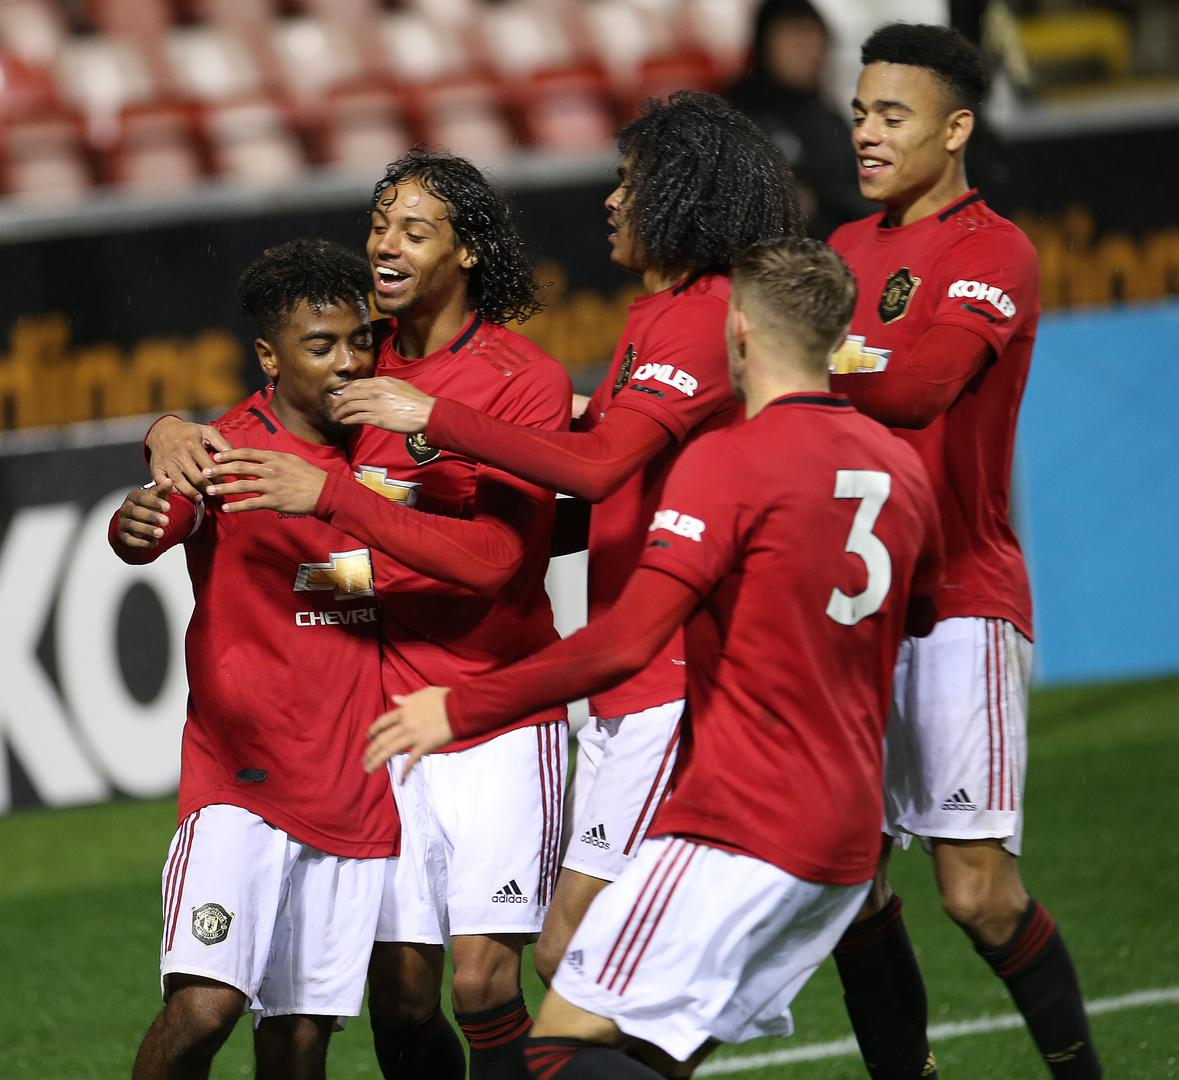 Angel Gomes is mobbed after scoring.